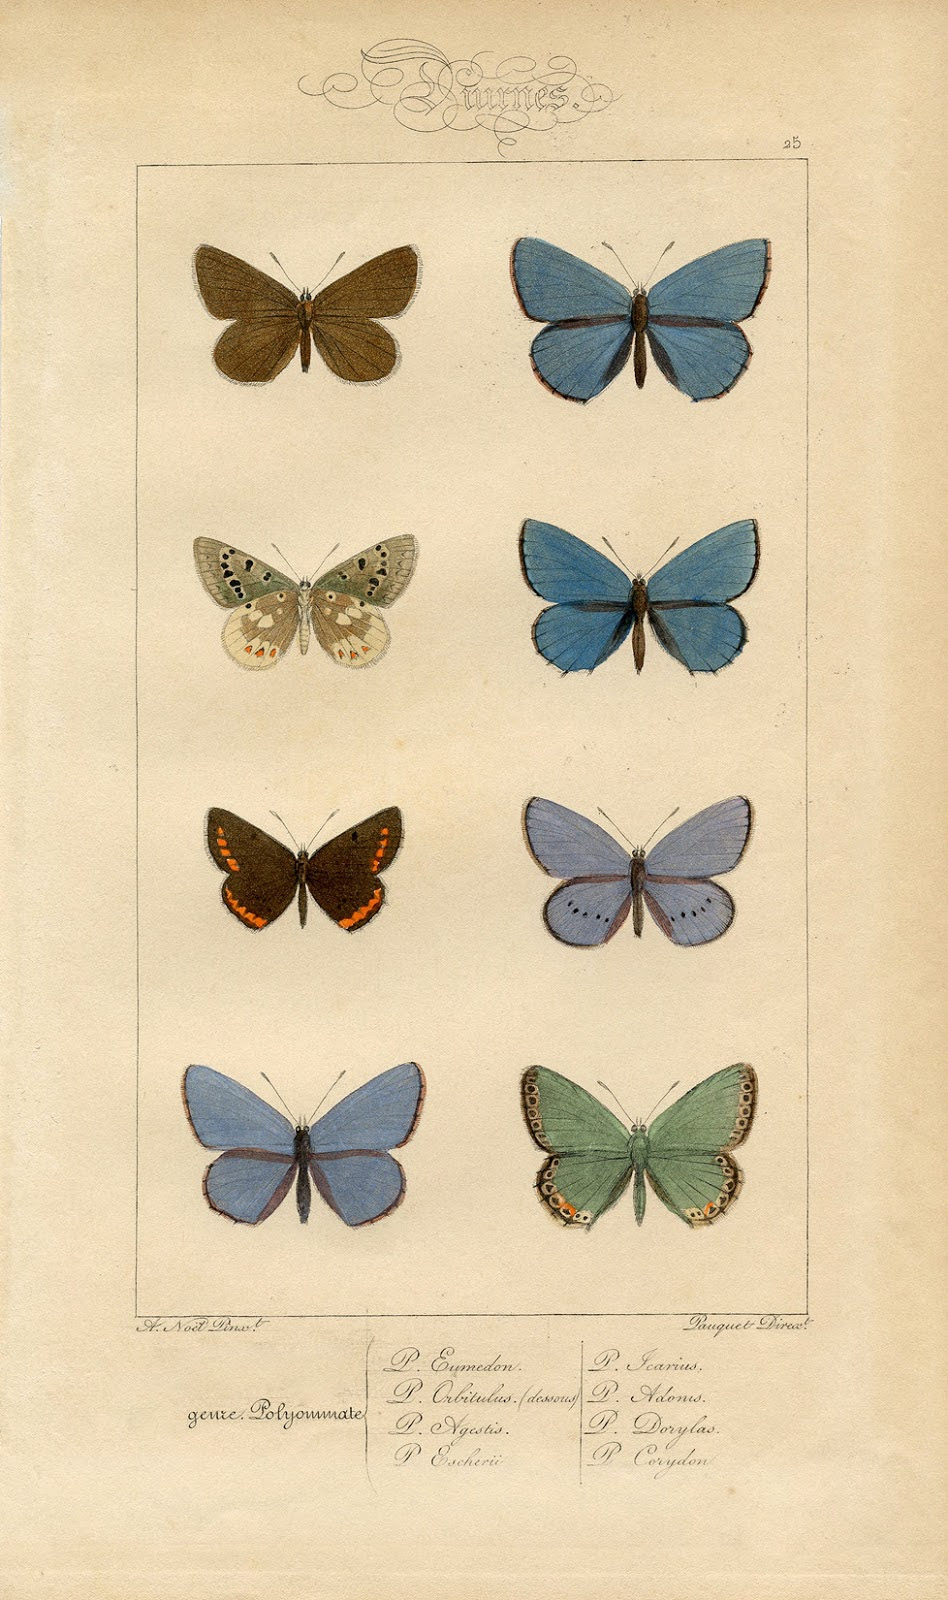 Butterfly Printable - Vintage Wall Decor - The Graphics Fairy